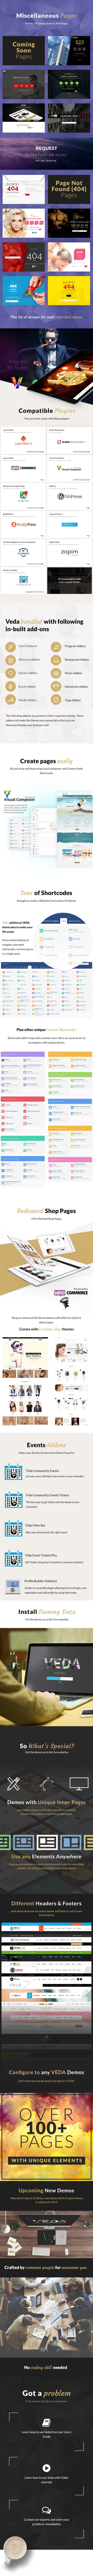 VEDA MultiPurpose WordPress Theme - 2